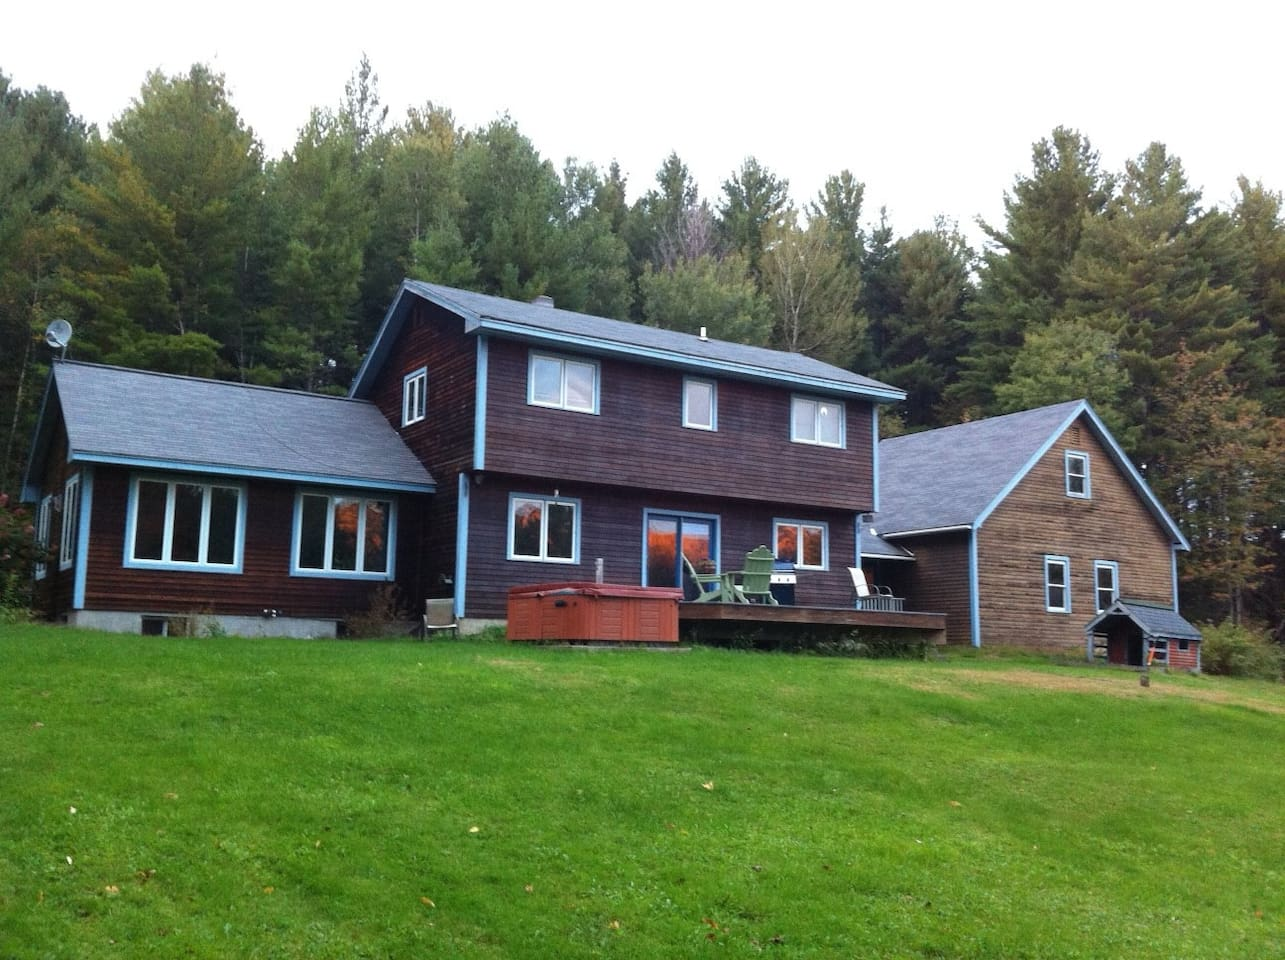 4-5  bedroom, 2 bath home for rent by the week and/or month in Warren, Sugarbush Valley , Vermont